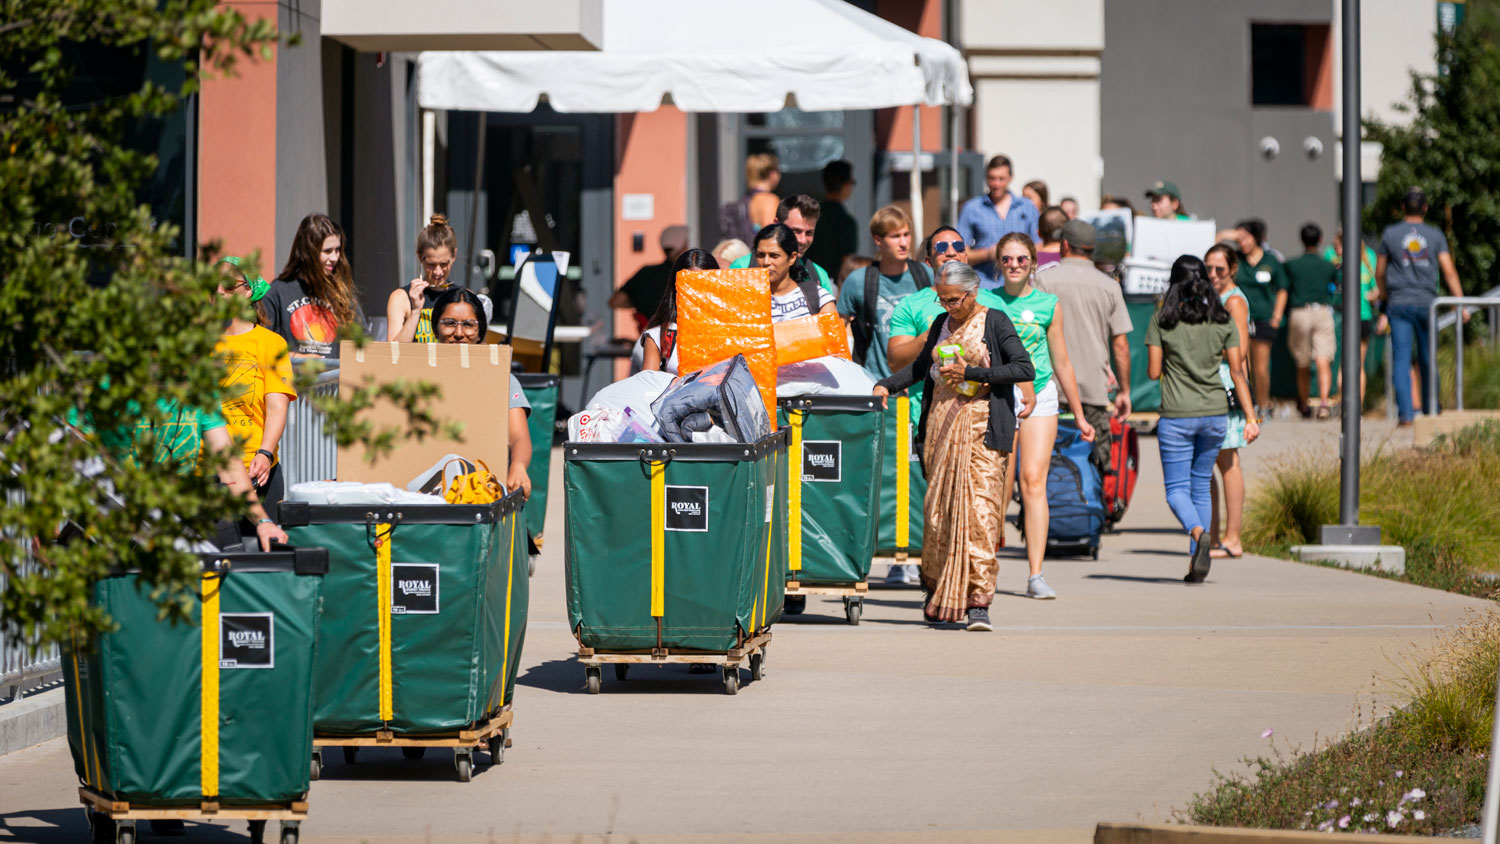 A row of carts pushed by students and family line up at the yakʔitʸutʸu residence halls